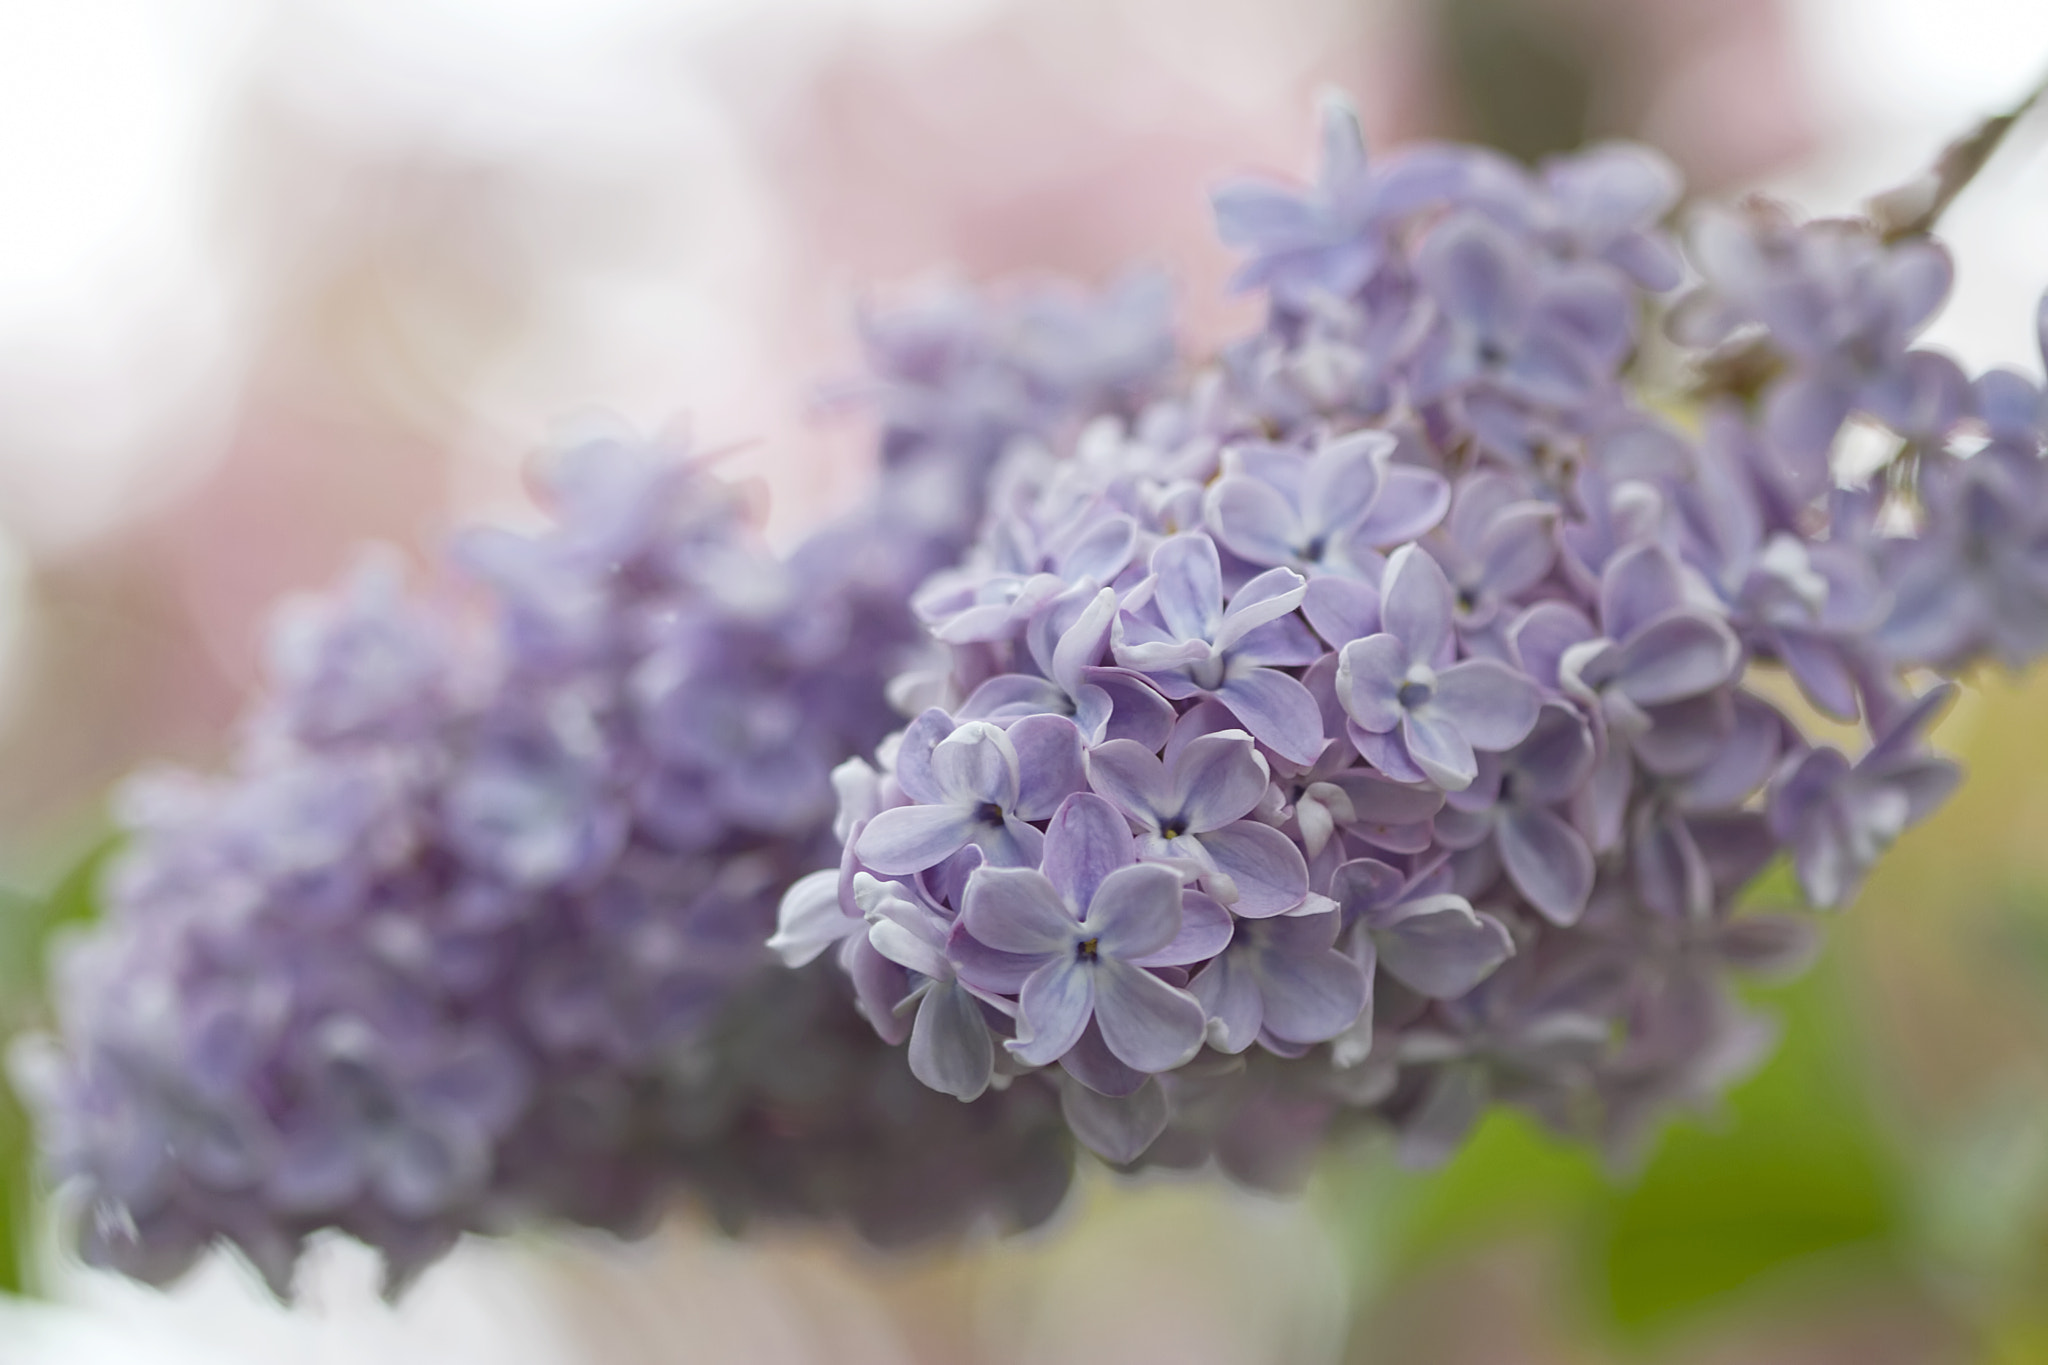 Photograph Scentillating by Renae Smith on 500px